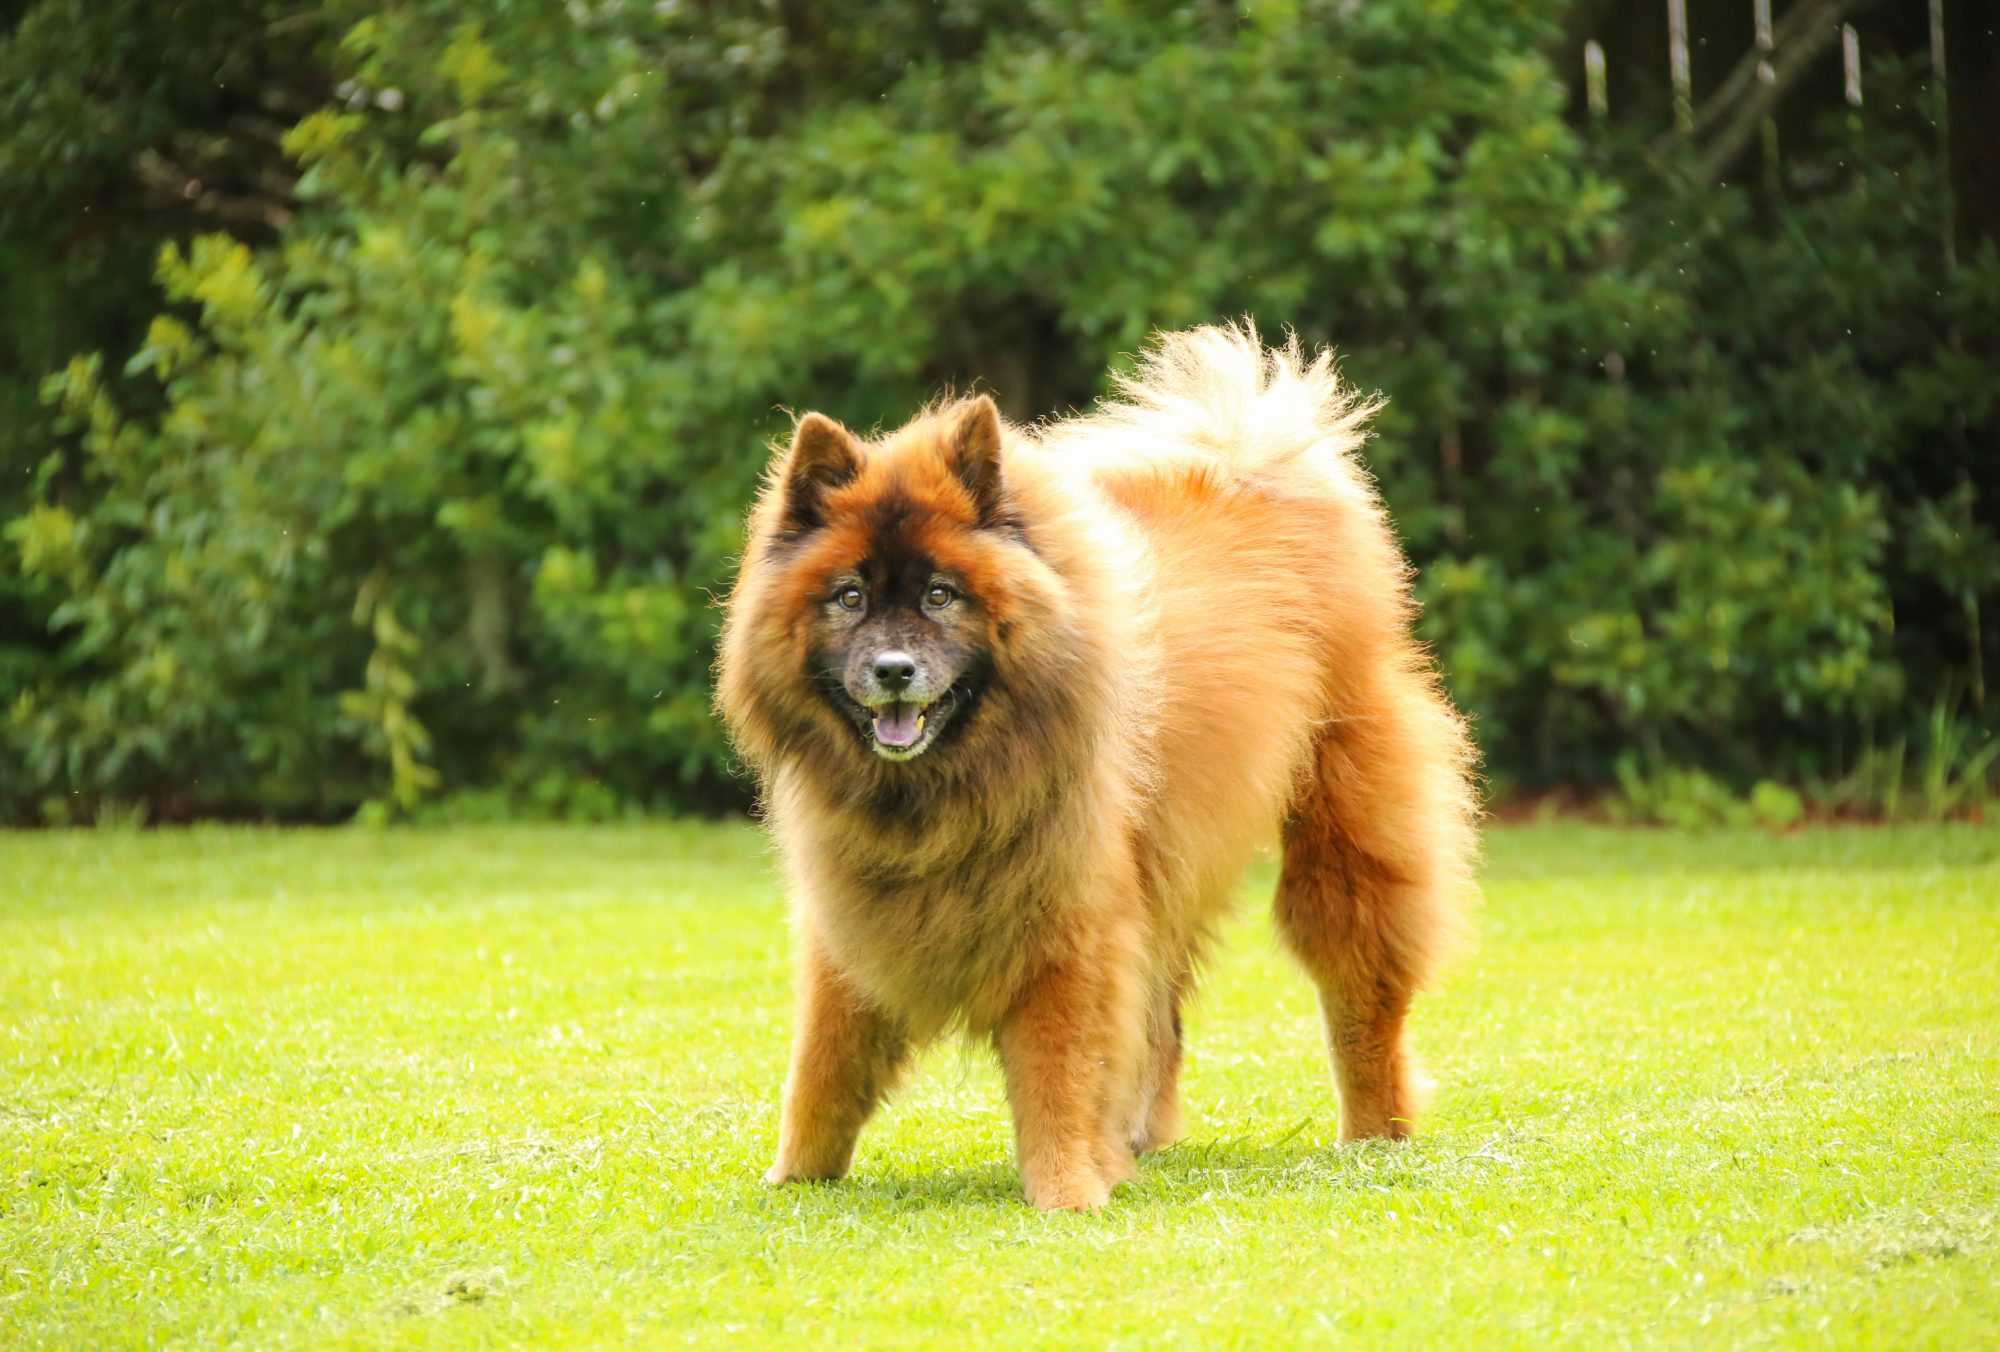 Happy and healthy eurasier dog